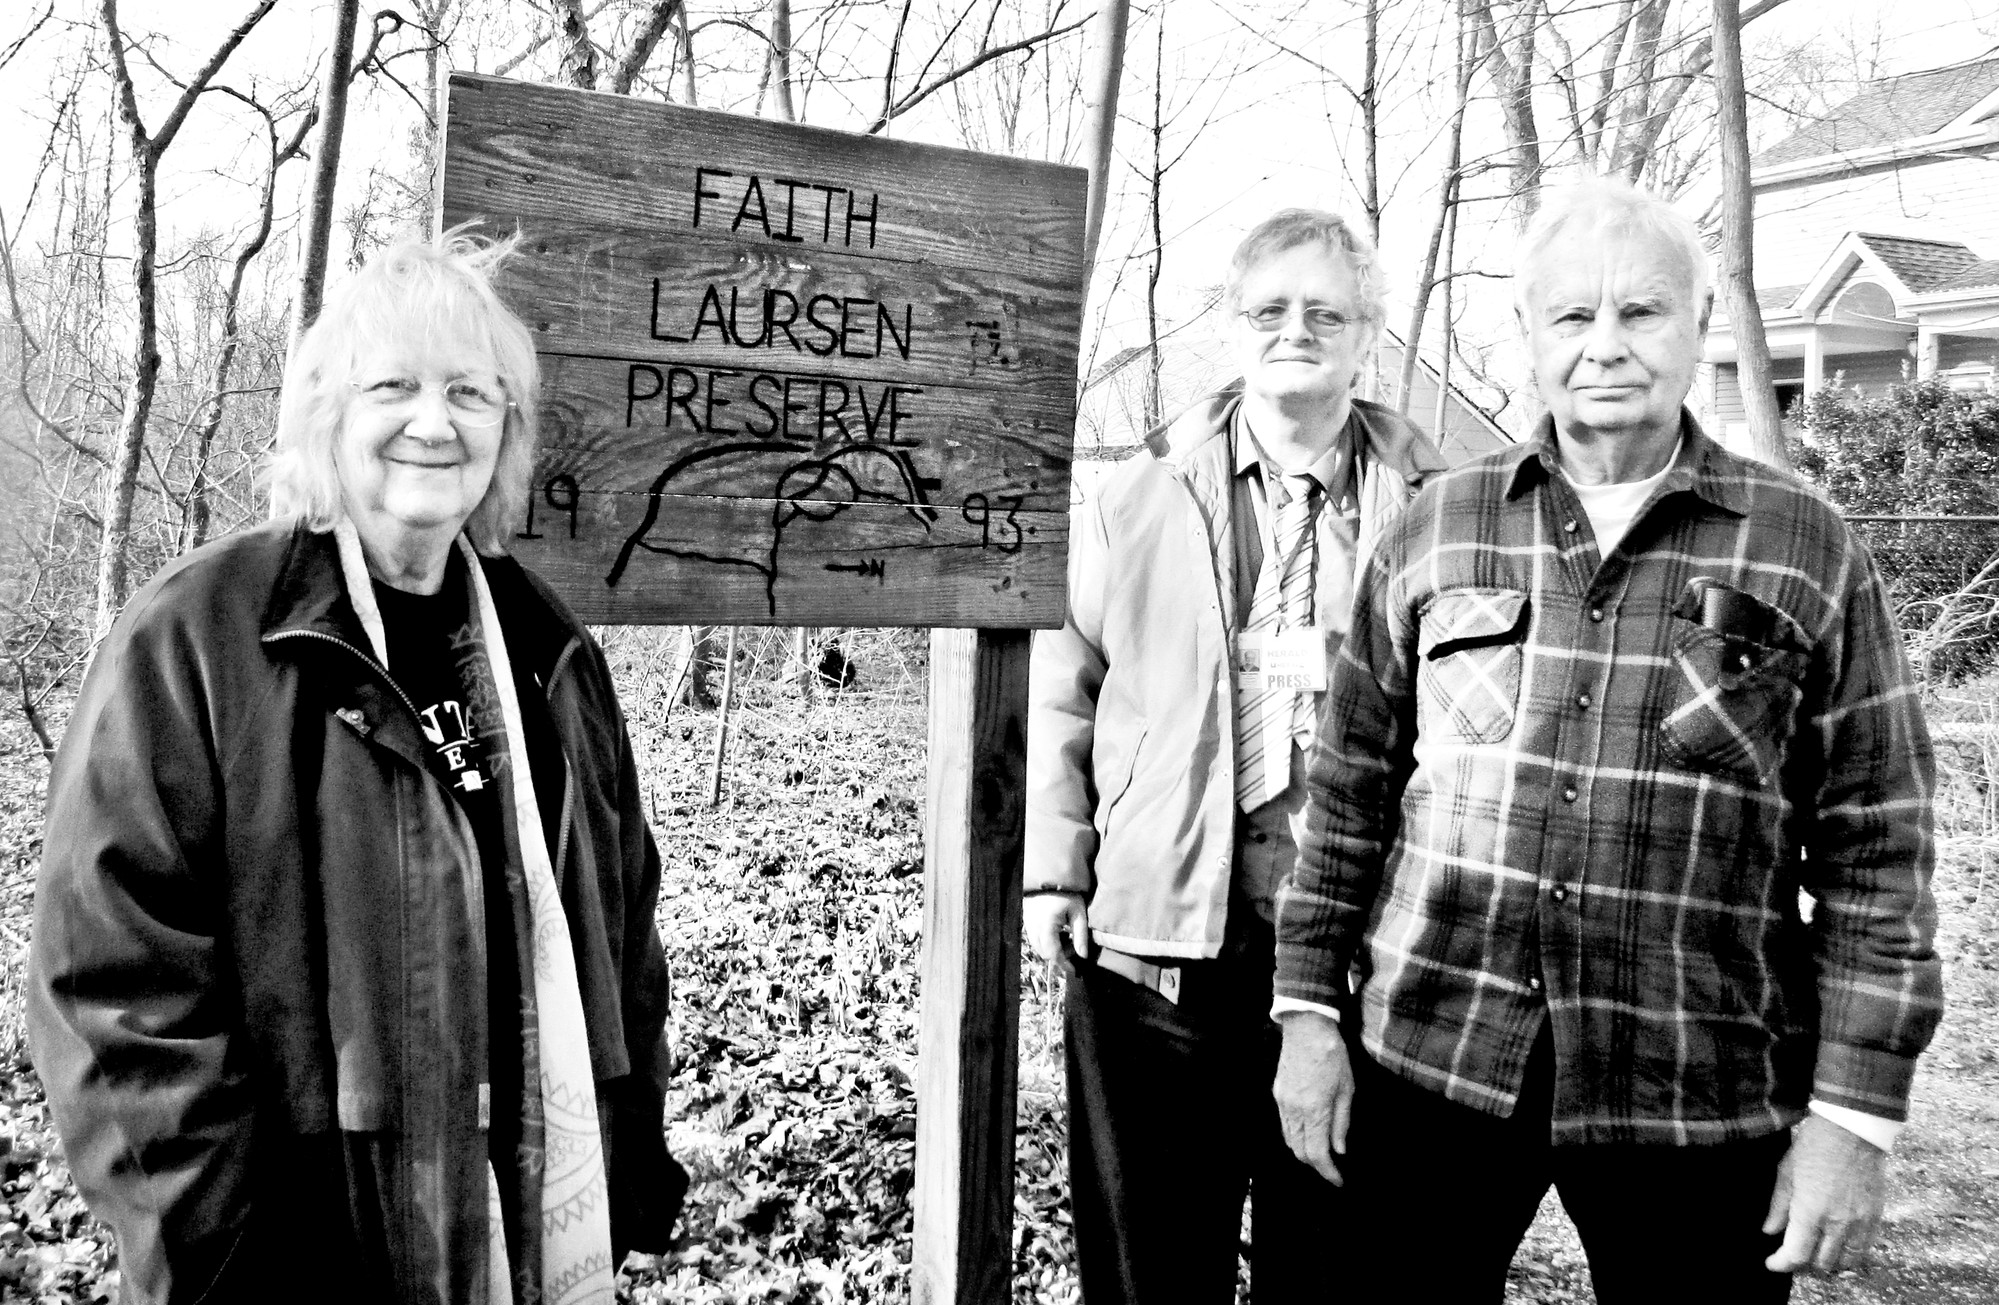 Paul Laursen, second from left, son of Faith Laursen, joined Barbara and Bill Wood, members of the Friends of the Faith Laursen Preserve, outside the 25-acre nature reserve.